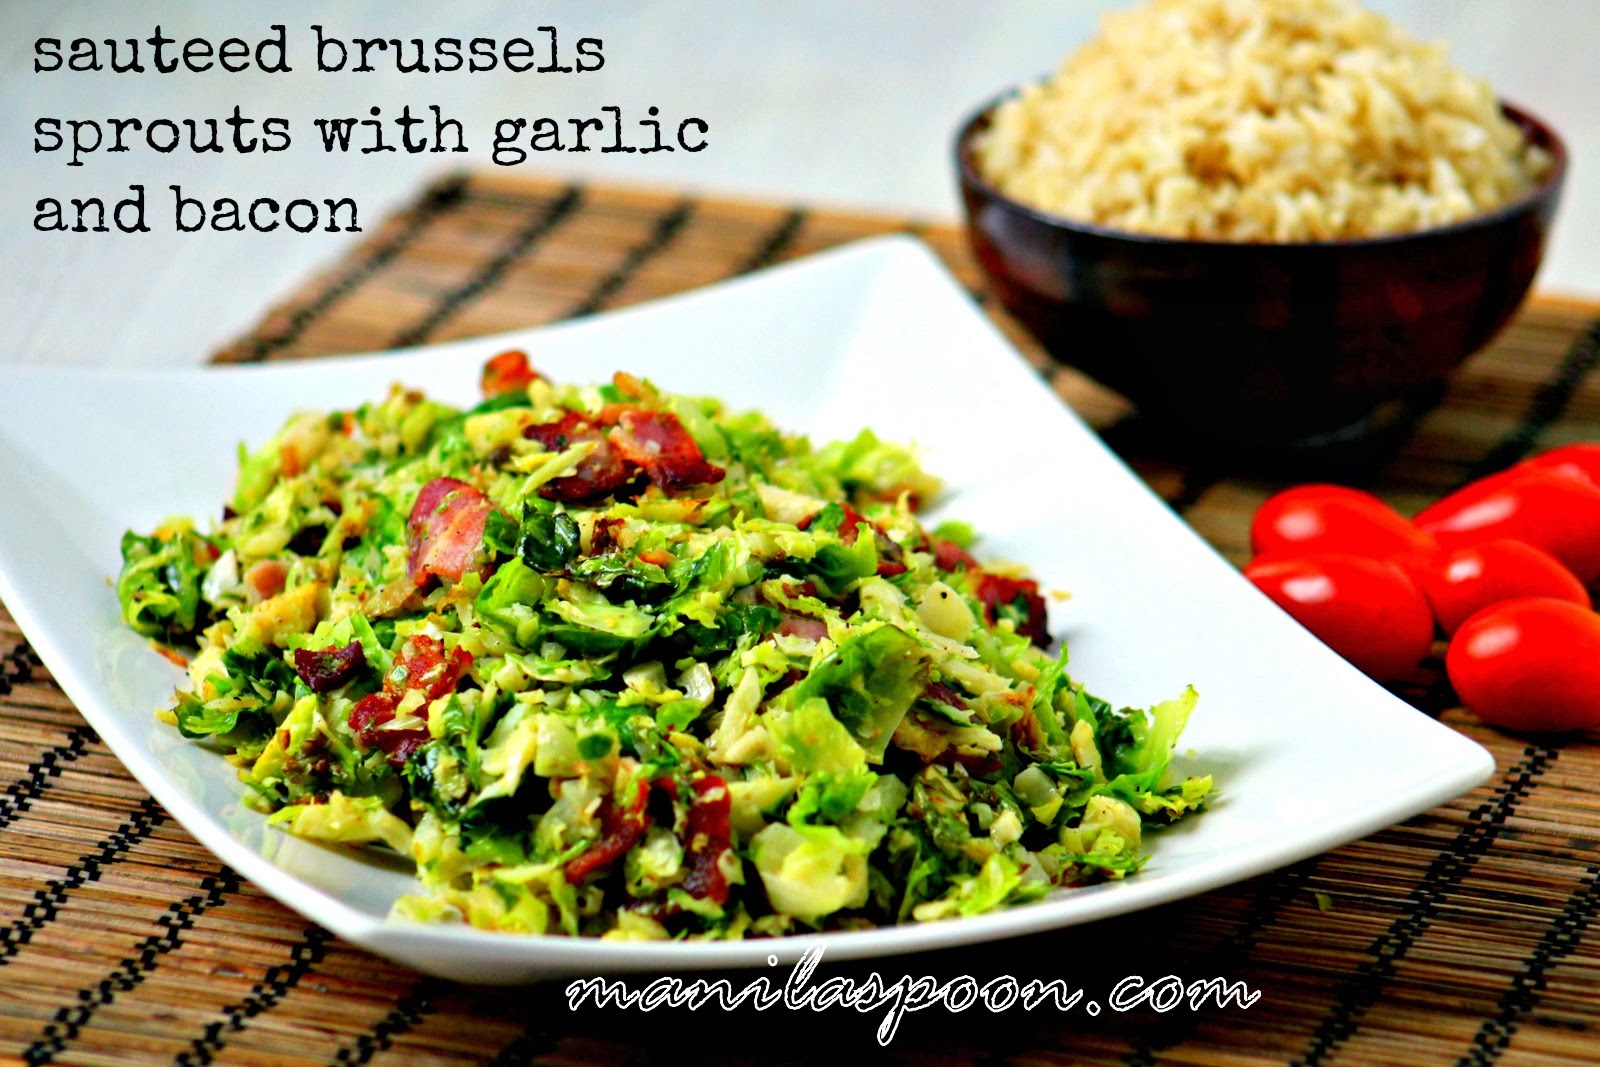 Full of bacon and garlicky deliciousness this sautéed Brussels Sprouts will please even non-brussels sprouts fan!! Done in 10 minutes or less, it's seriously tasty, too!